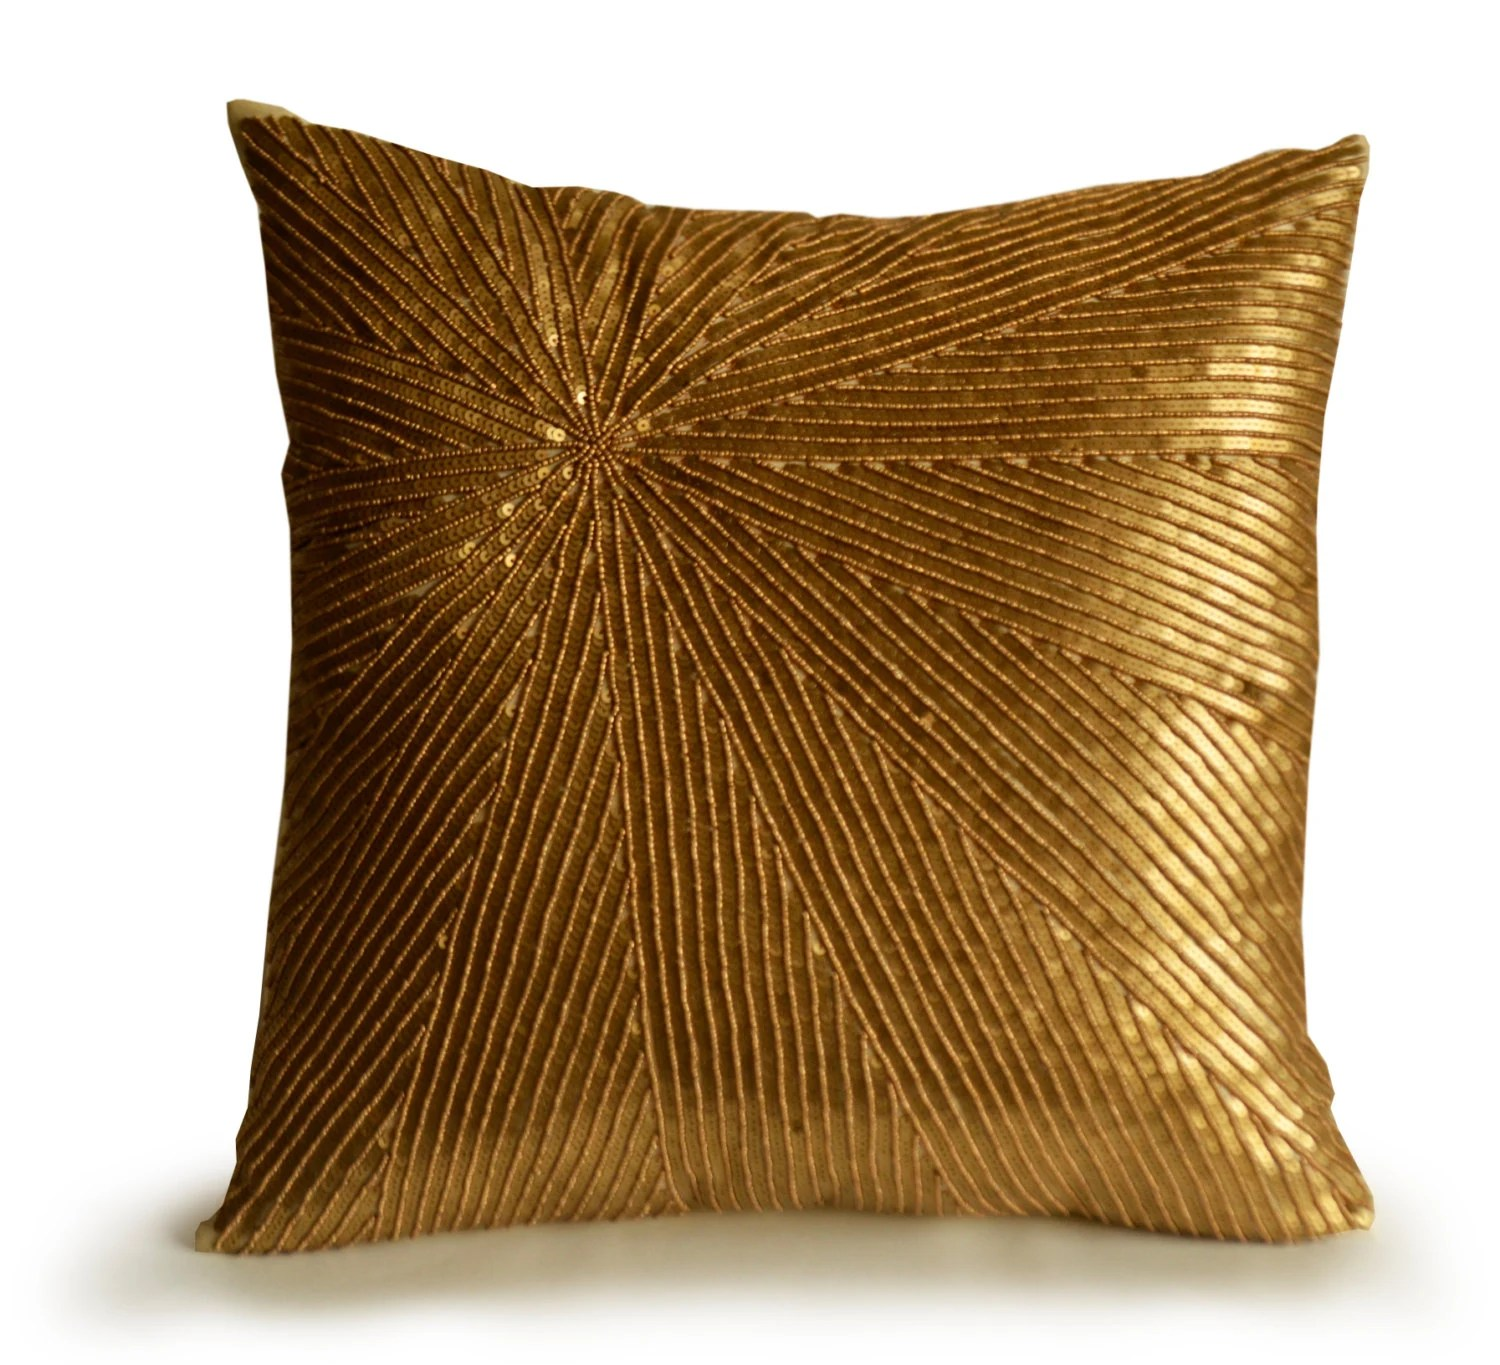 Throw Pillows Cover Gold Pillows Gold Pillow Covers Gold